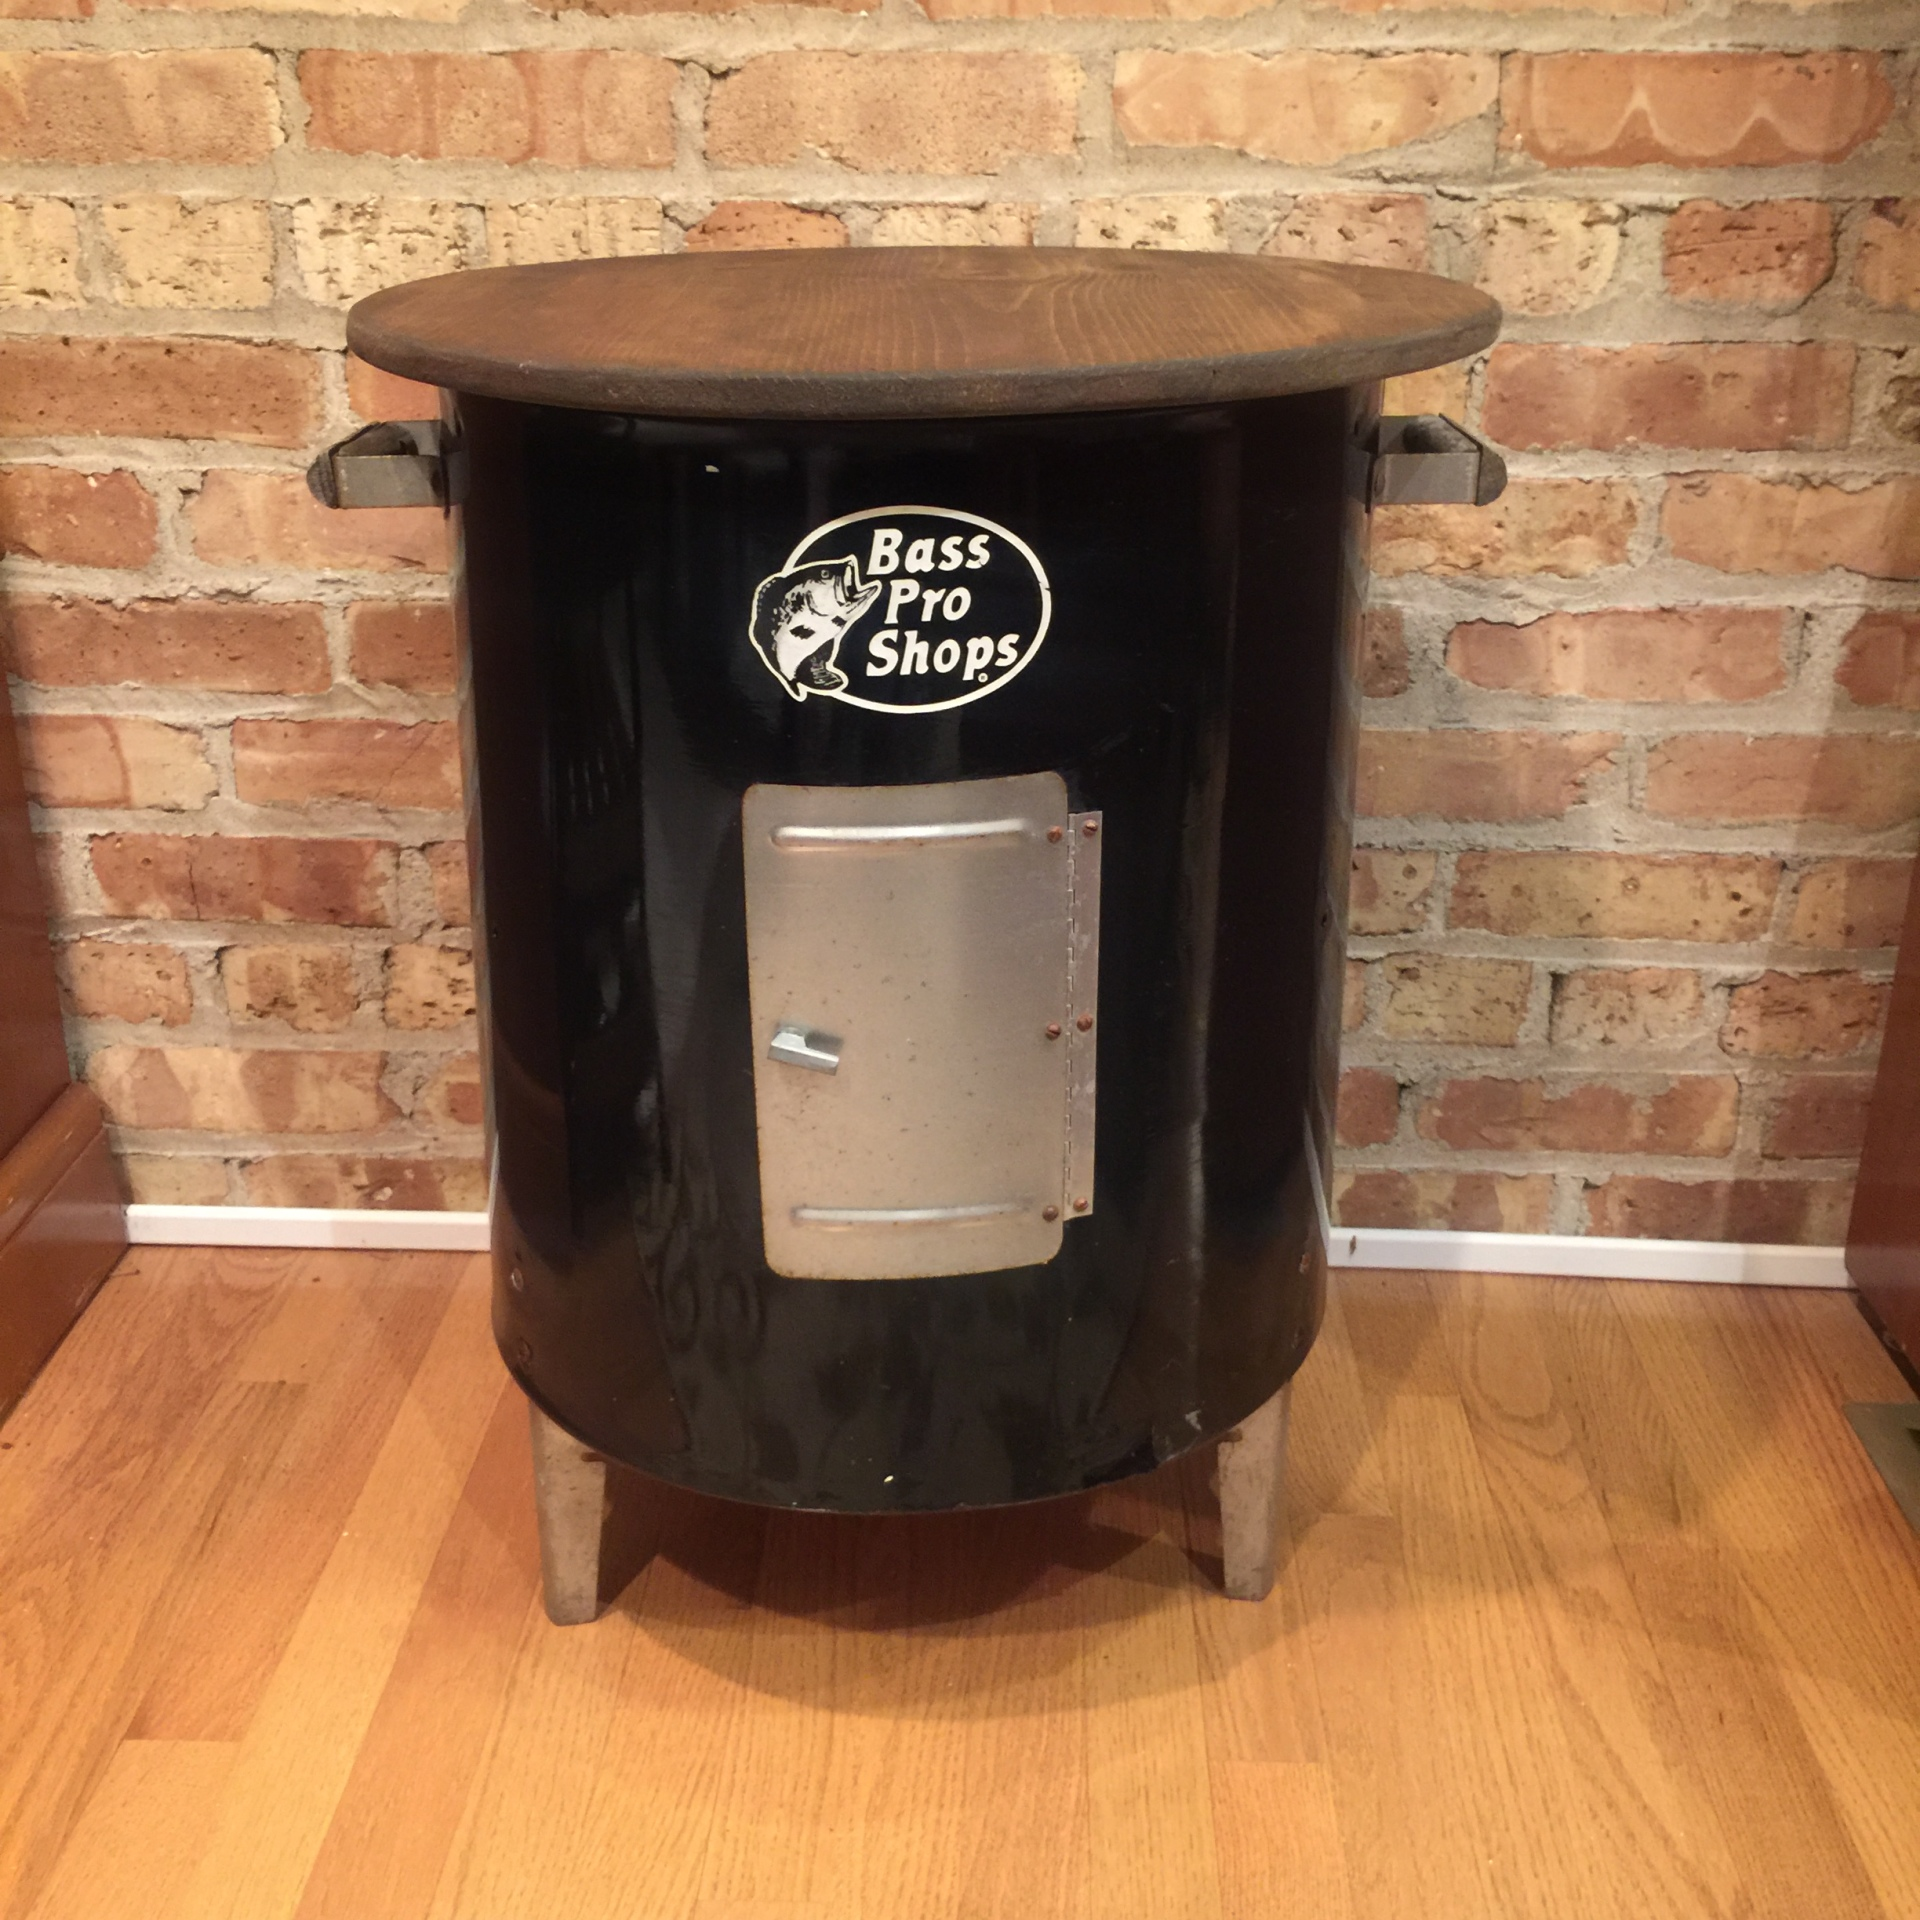 Bass Pro End Table - $150